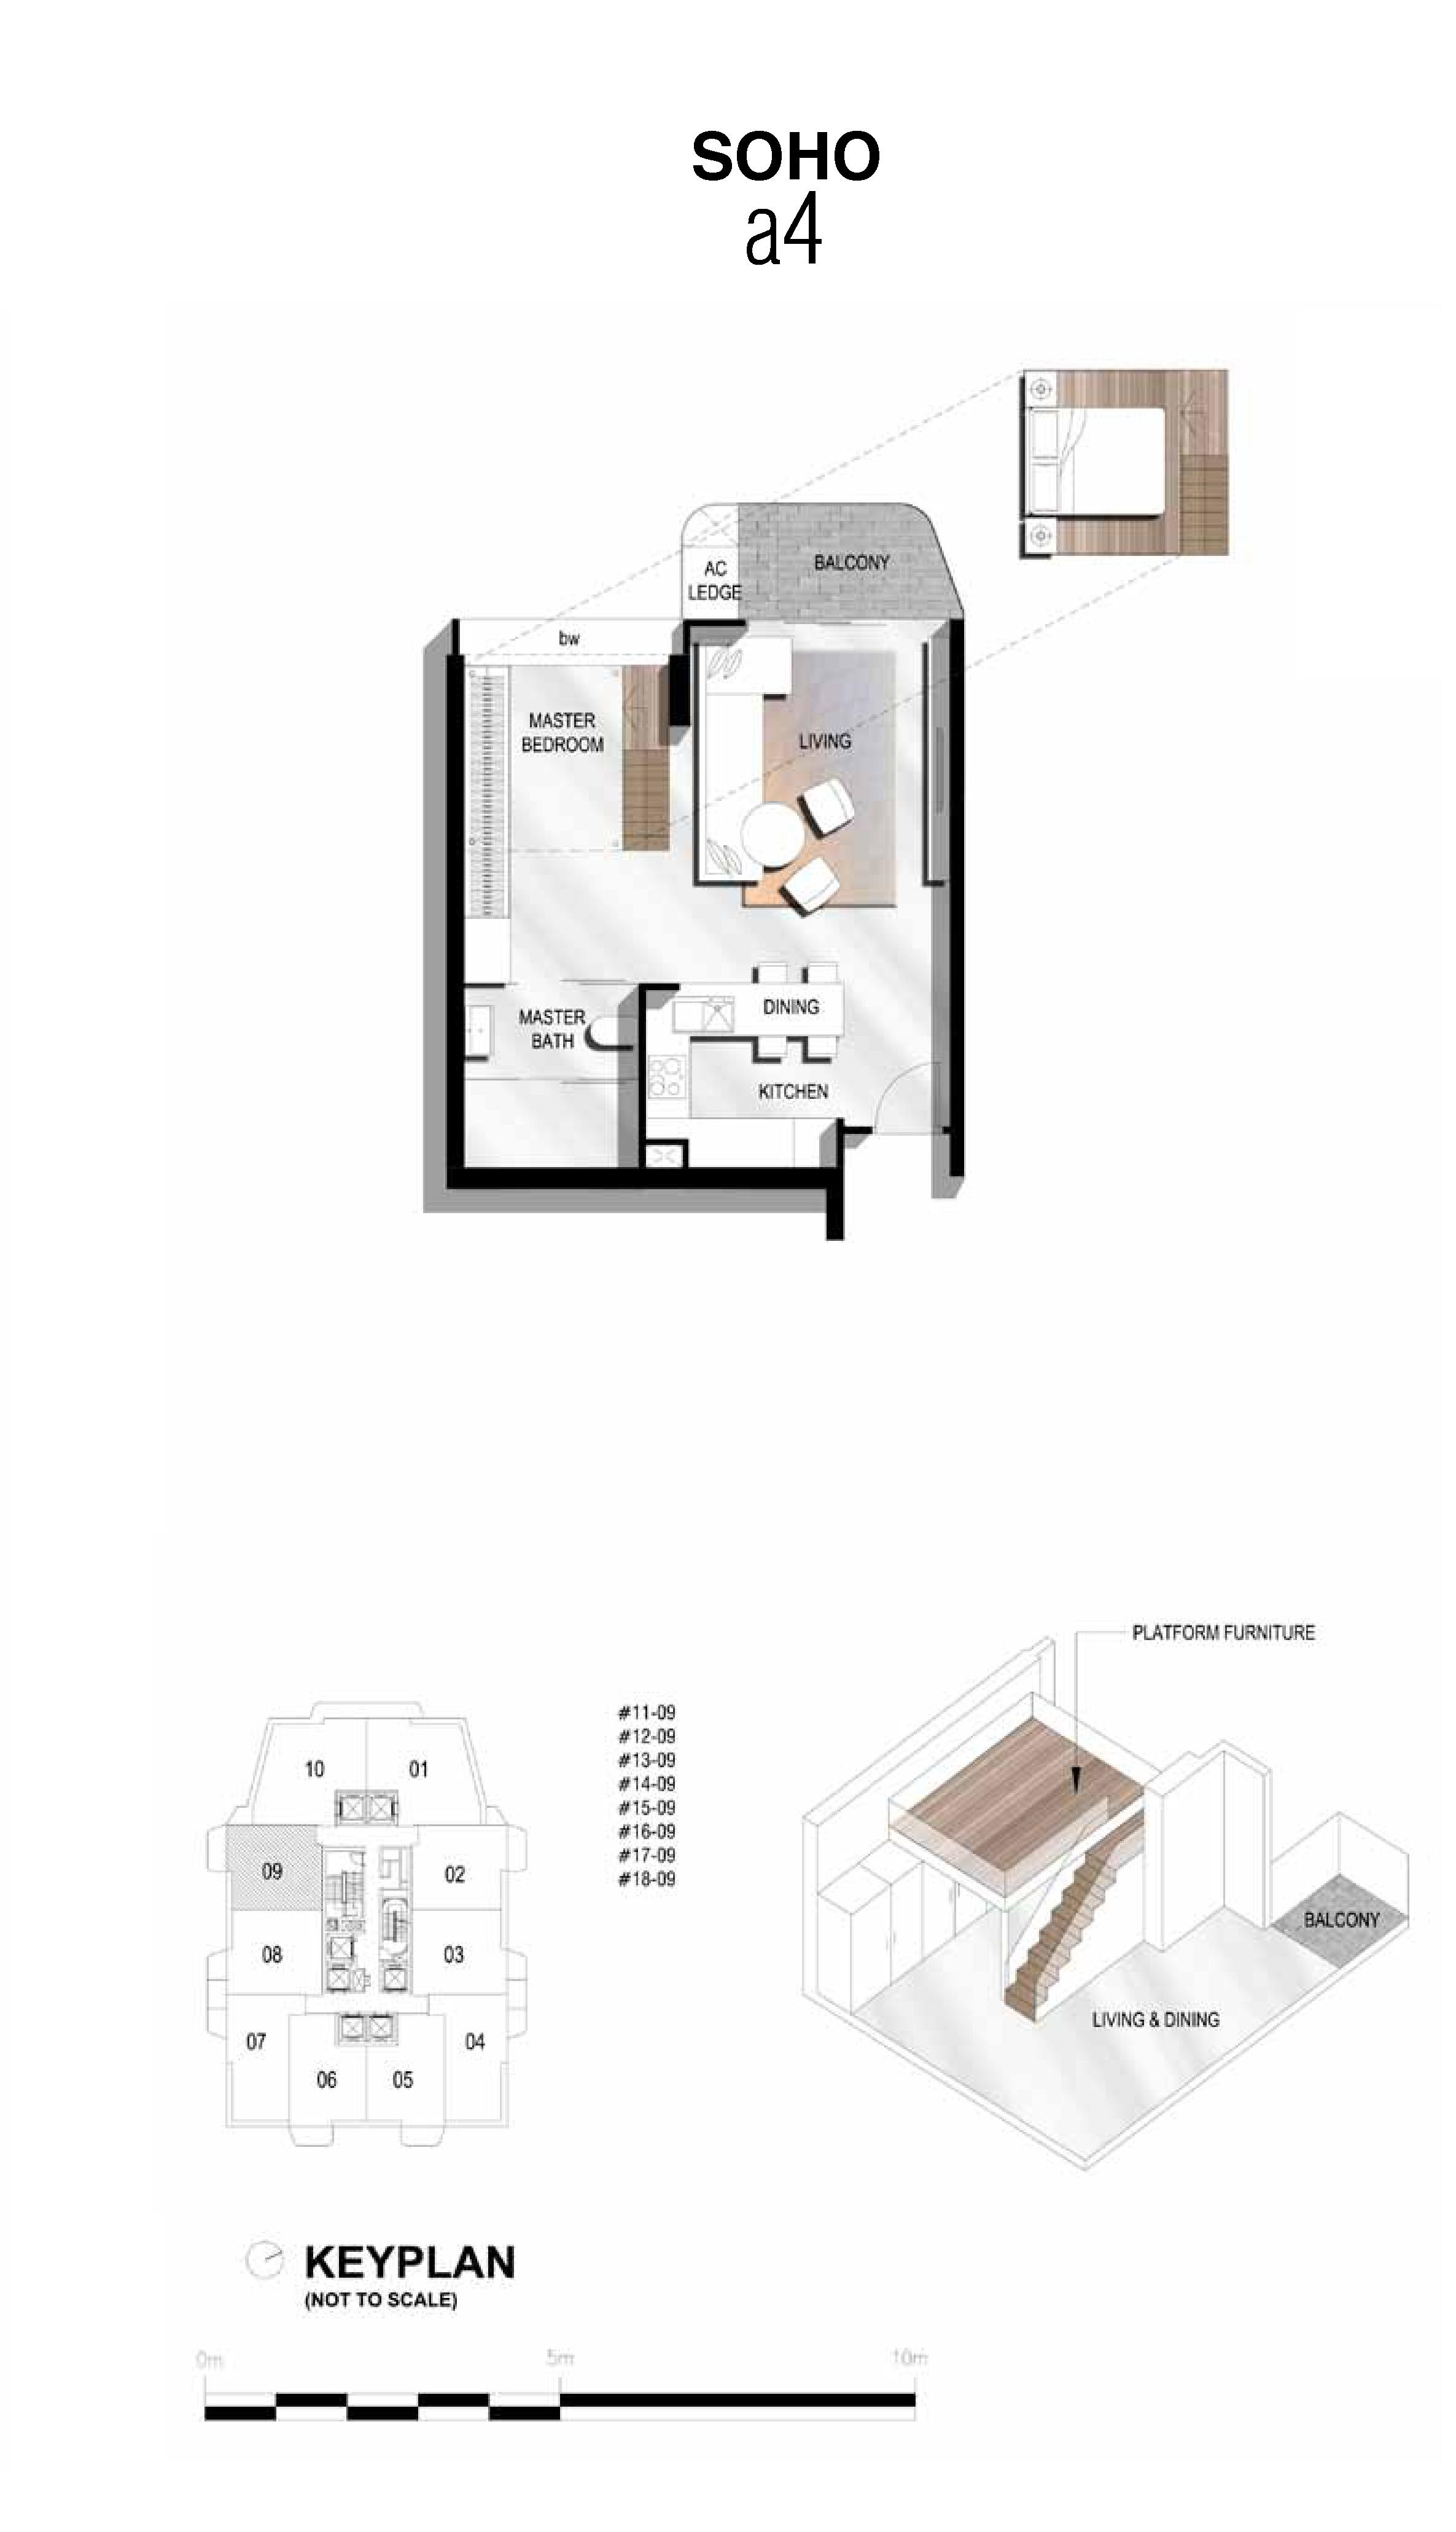 The Scotts Tower 1 Bedroom SOHO Type a4 Floor Plans